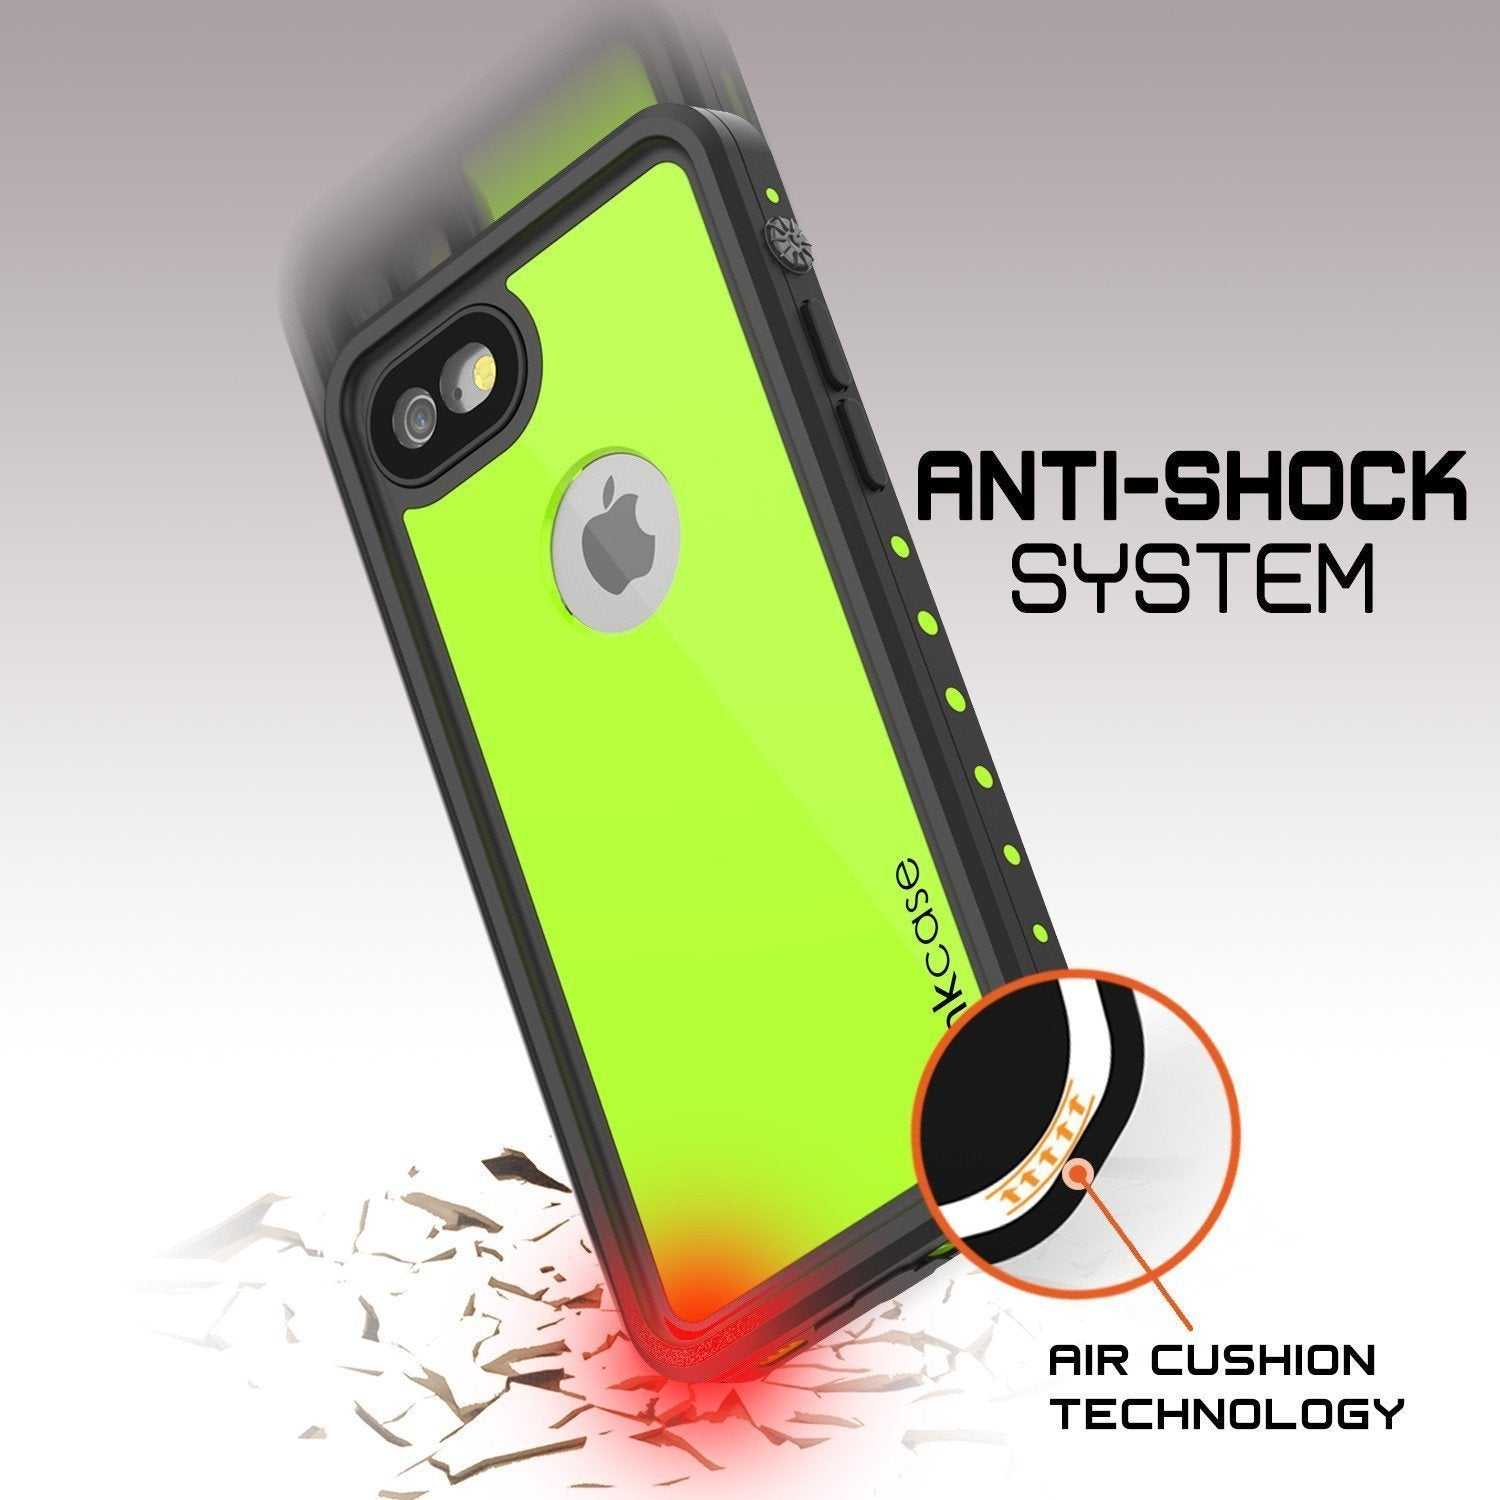 iPhone 8 Waterproof Case, Punkcase [Light Green] [StudStar Series] [Slim Fit][IP68 Certified]  [Dirt/Snow Proof] - PunkCase NZ